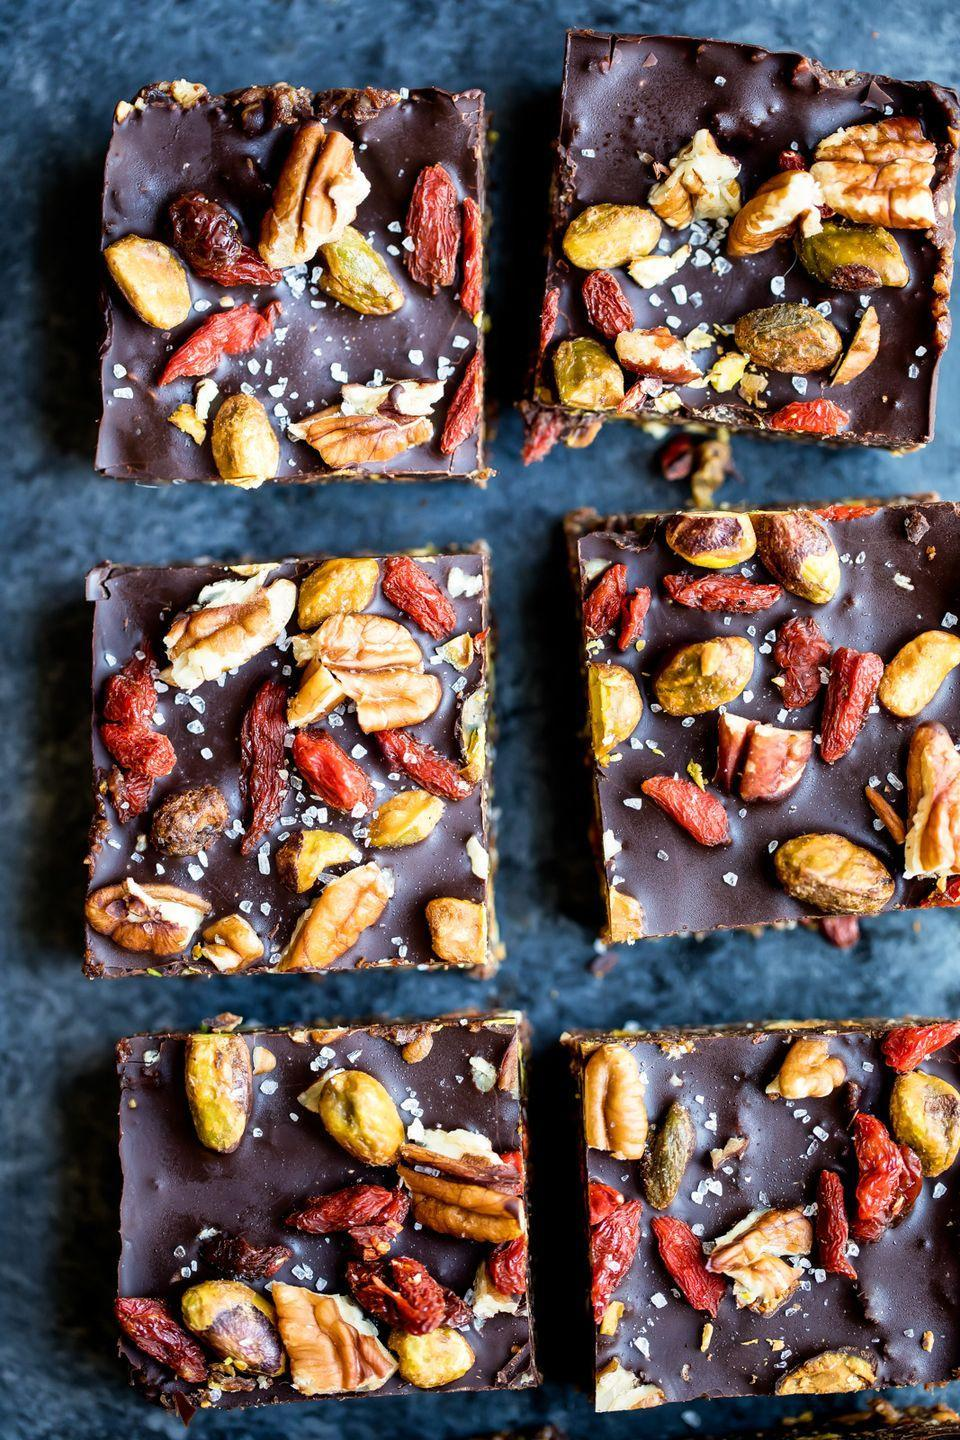 """<p>These rich dark chocolate brownies get lots of color from pistachios, goji berries, walnuts, chia seeds, and coconut.</p><p><a class=""""link rapid-noclick-resp"""" href=""""https://www.ambitiouskitchen.com/no-bake-superfood-brownie-energy-bars-video/"""" rel=""""nofollow noopener"""" target=""""_blank"""" data-ylk=""""slk:GET THE RECIPE"""">GET THE RECIPE</a></p><p><em>Per serving: 234 calories, 14.2 g fat, 26.9 g carbs, 18.2 g sugar, 6g fiber, 4.5 g protein</em></p>"""